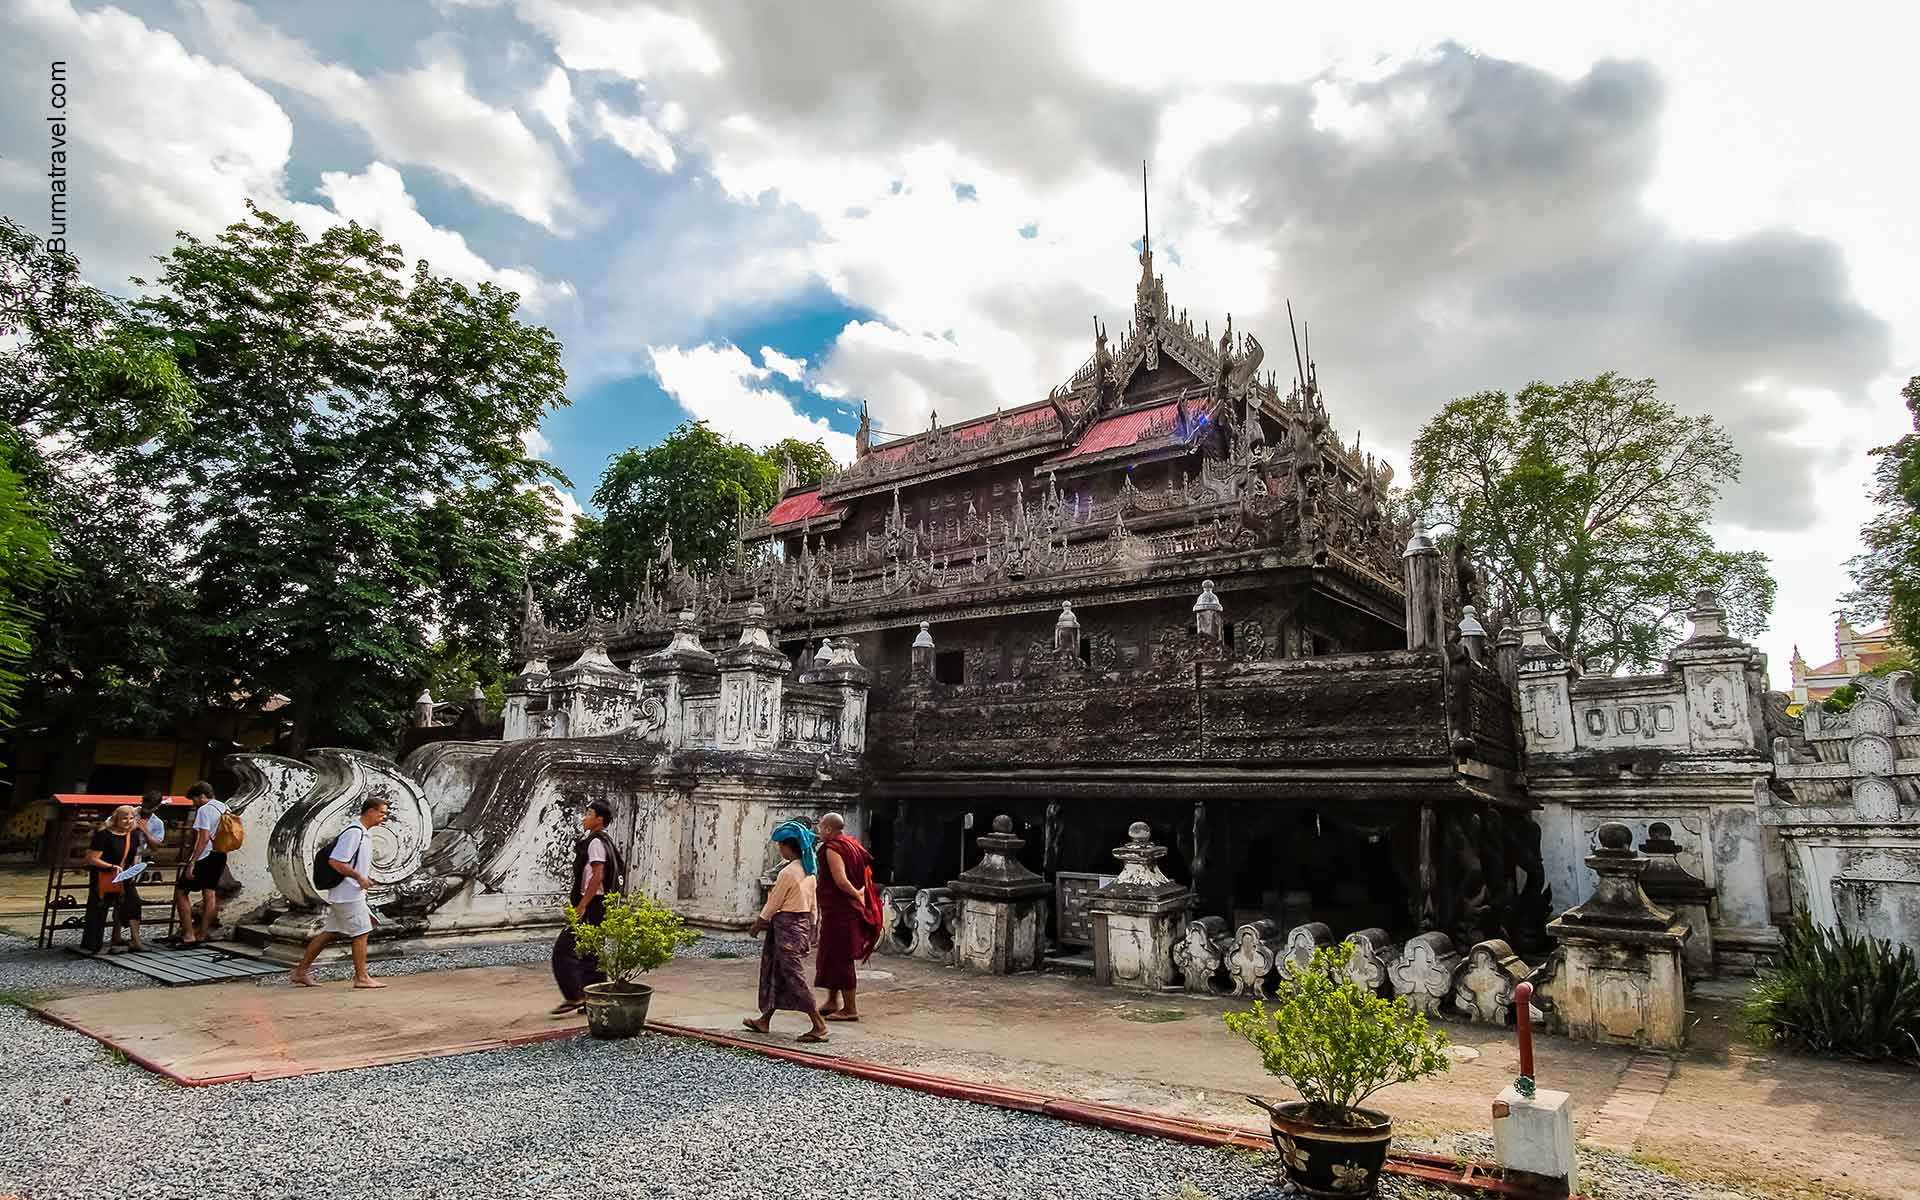 Golden Palace Monastery - Attractions in Mandalay